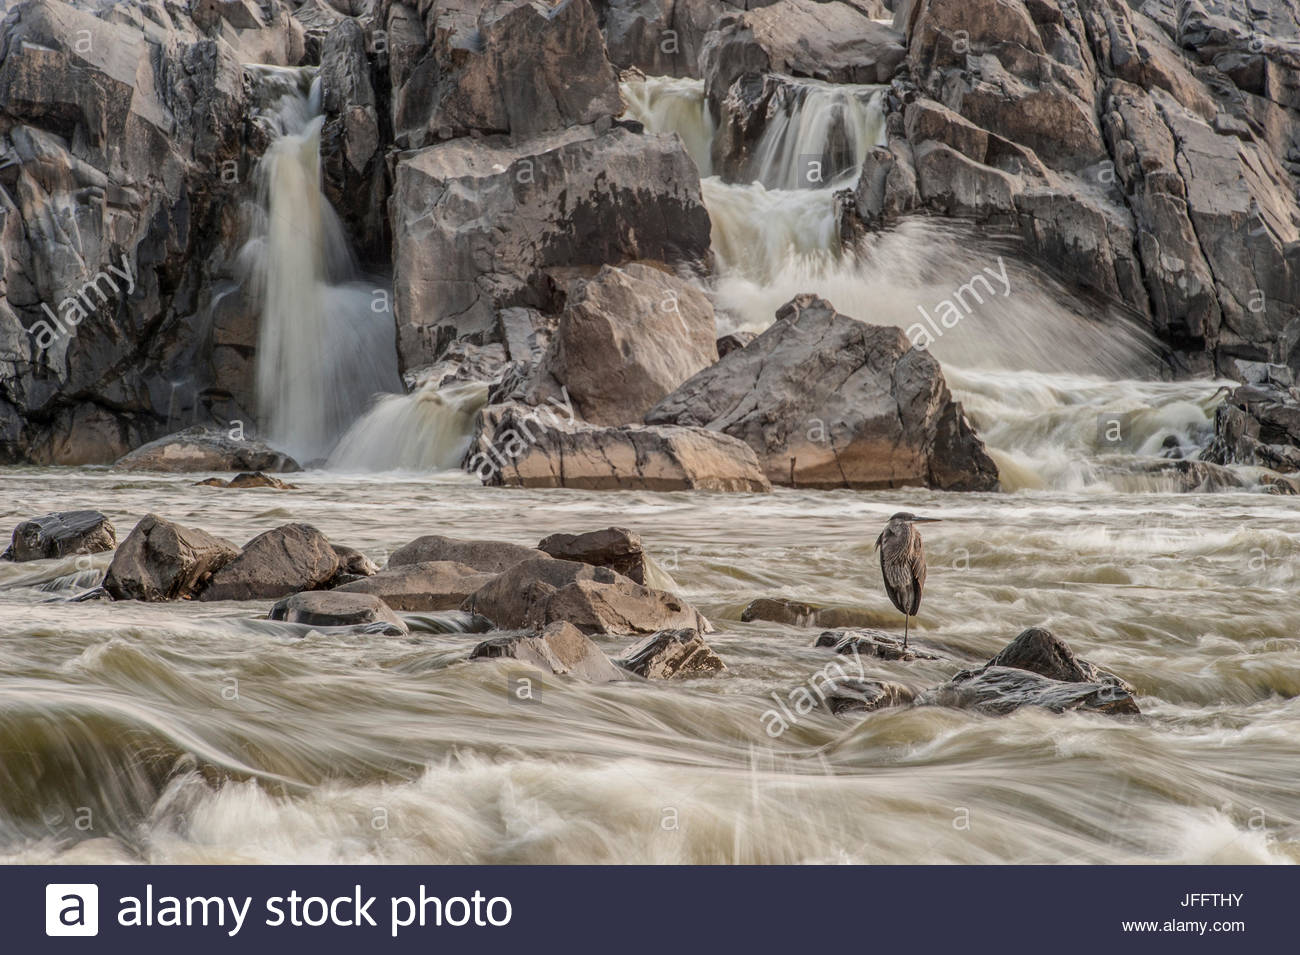 A great blue heron, Ardea herodias, on a rock in the swift moving waters of Great Falls. - Stock Image